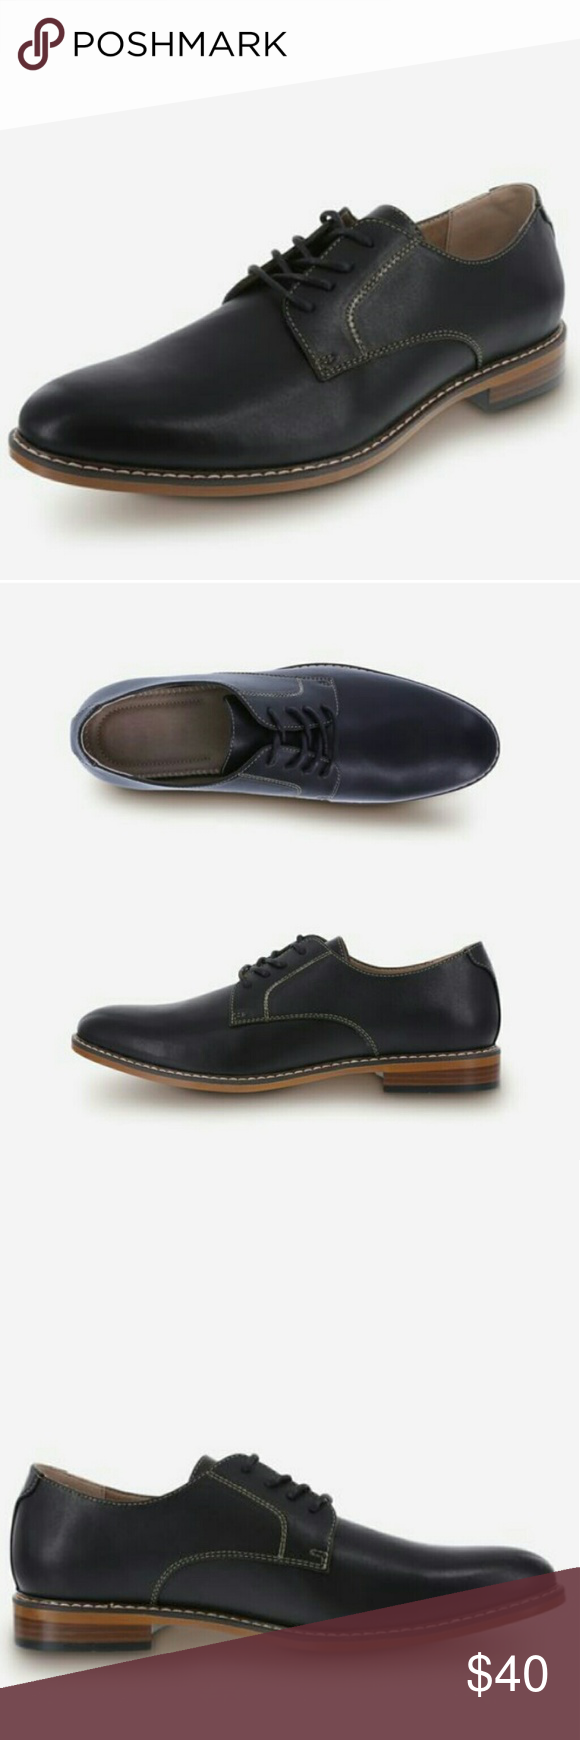 310ebec7b09356 Dexter Men s Alec Plain-Toe Oxfords You can t go wrong with this classic